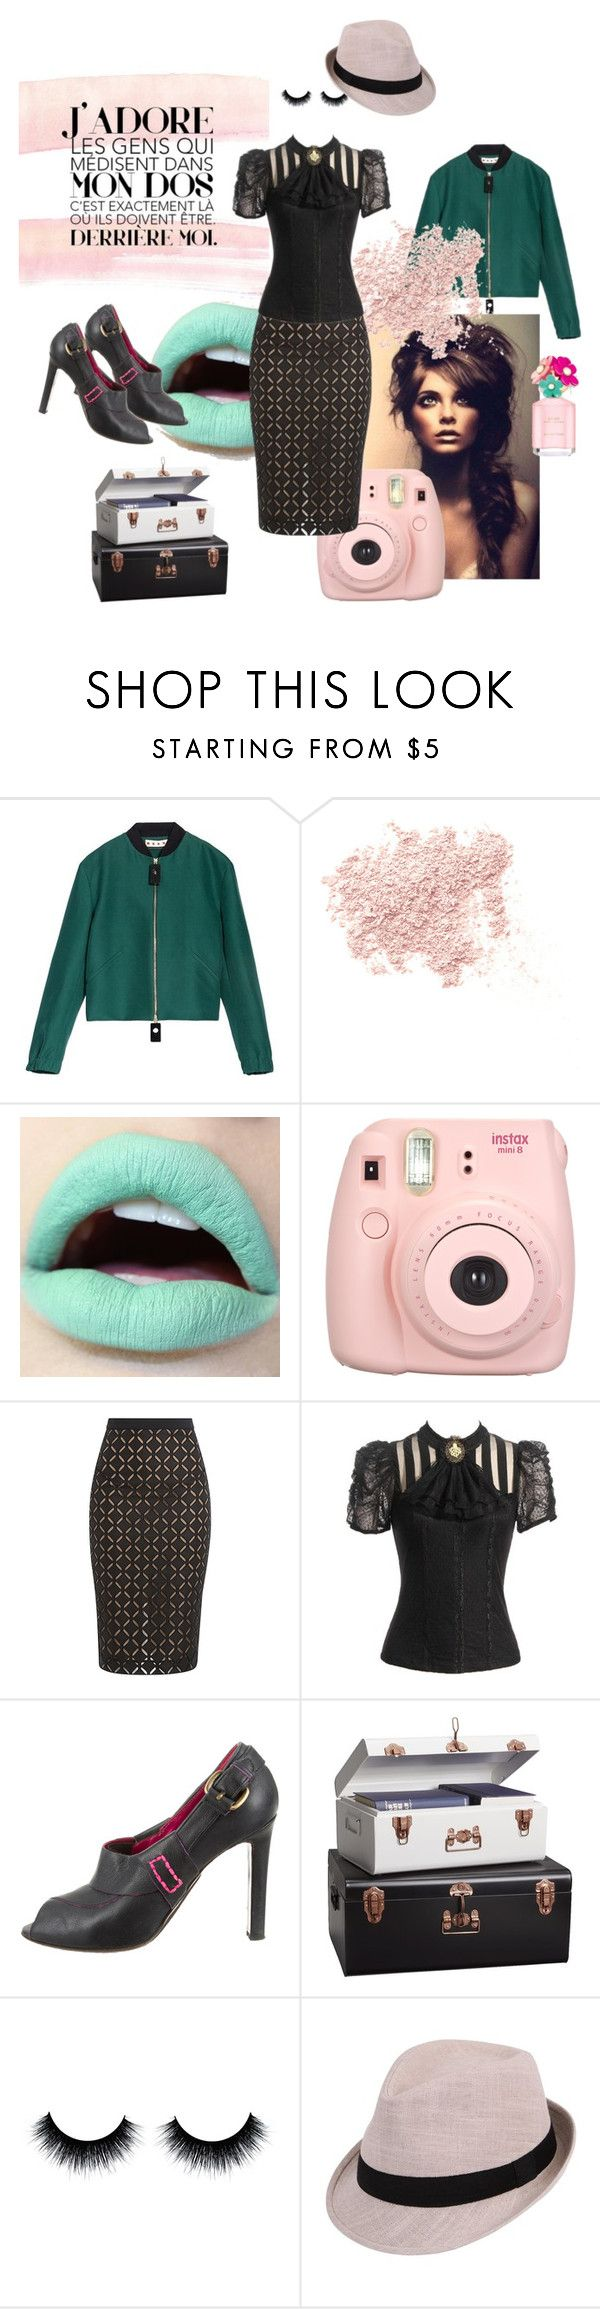 """J'ADORE"" by pinfi on Polyvore featuring Marni, Bare Escentuals, Marc Jacobs, Roland Mouret and Manolo Blahnik"